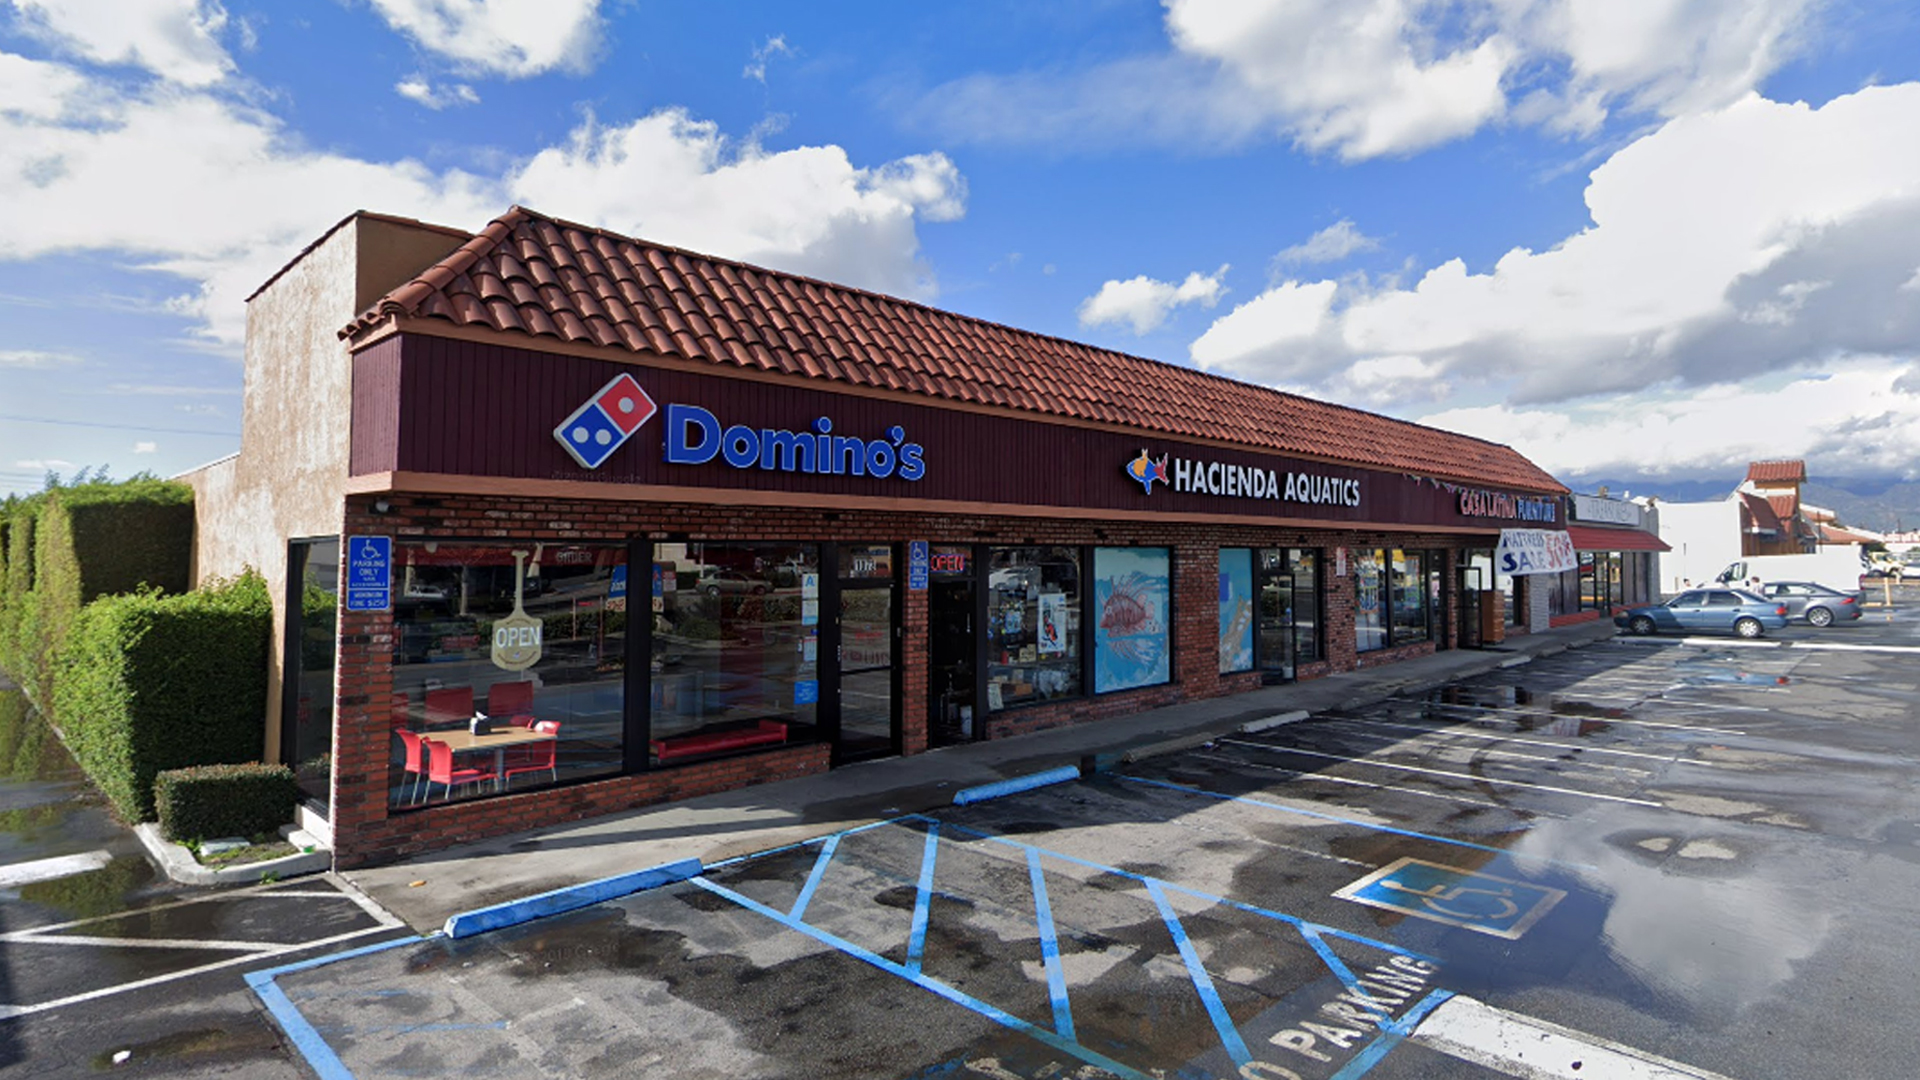 The Domino's Pizza on Hacienda Boulevard in La Puente is seen in a Google Maps Street View image.